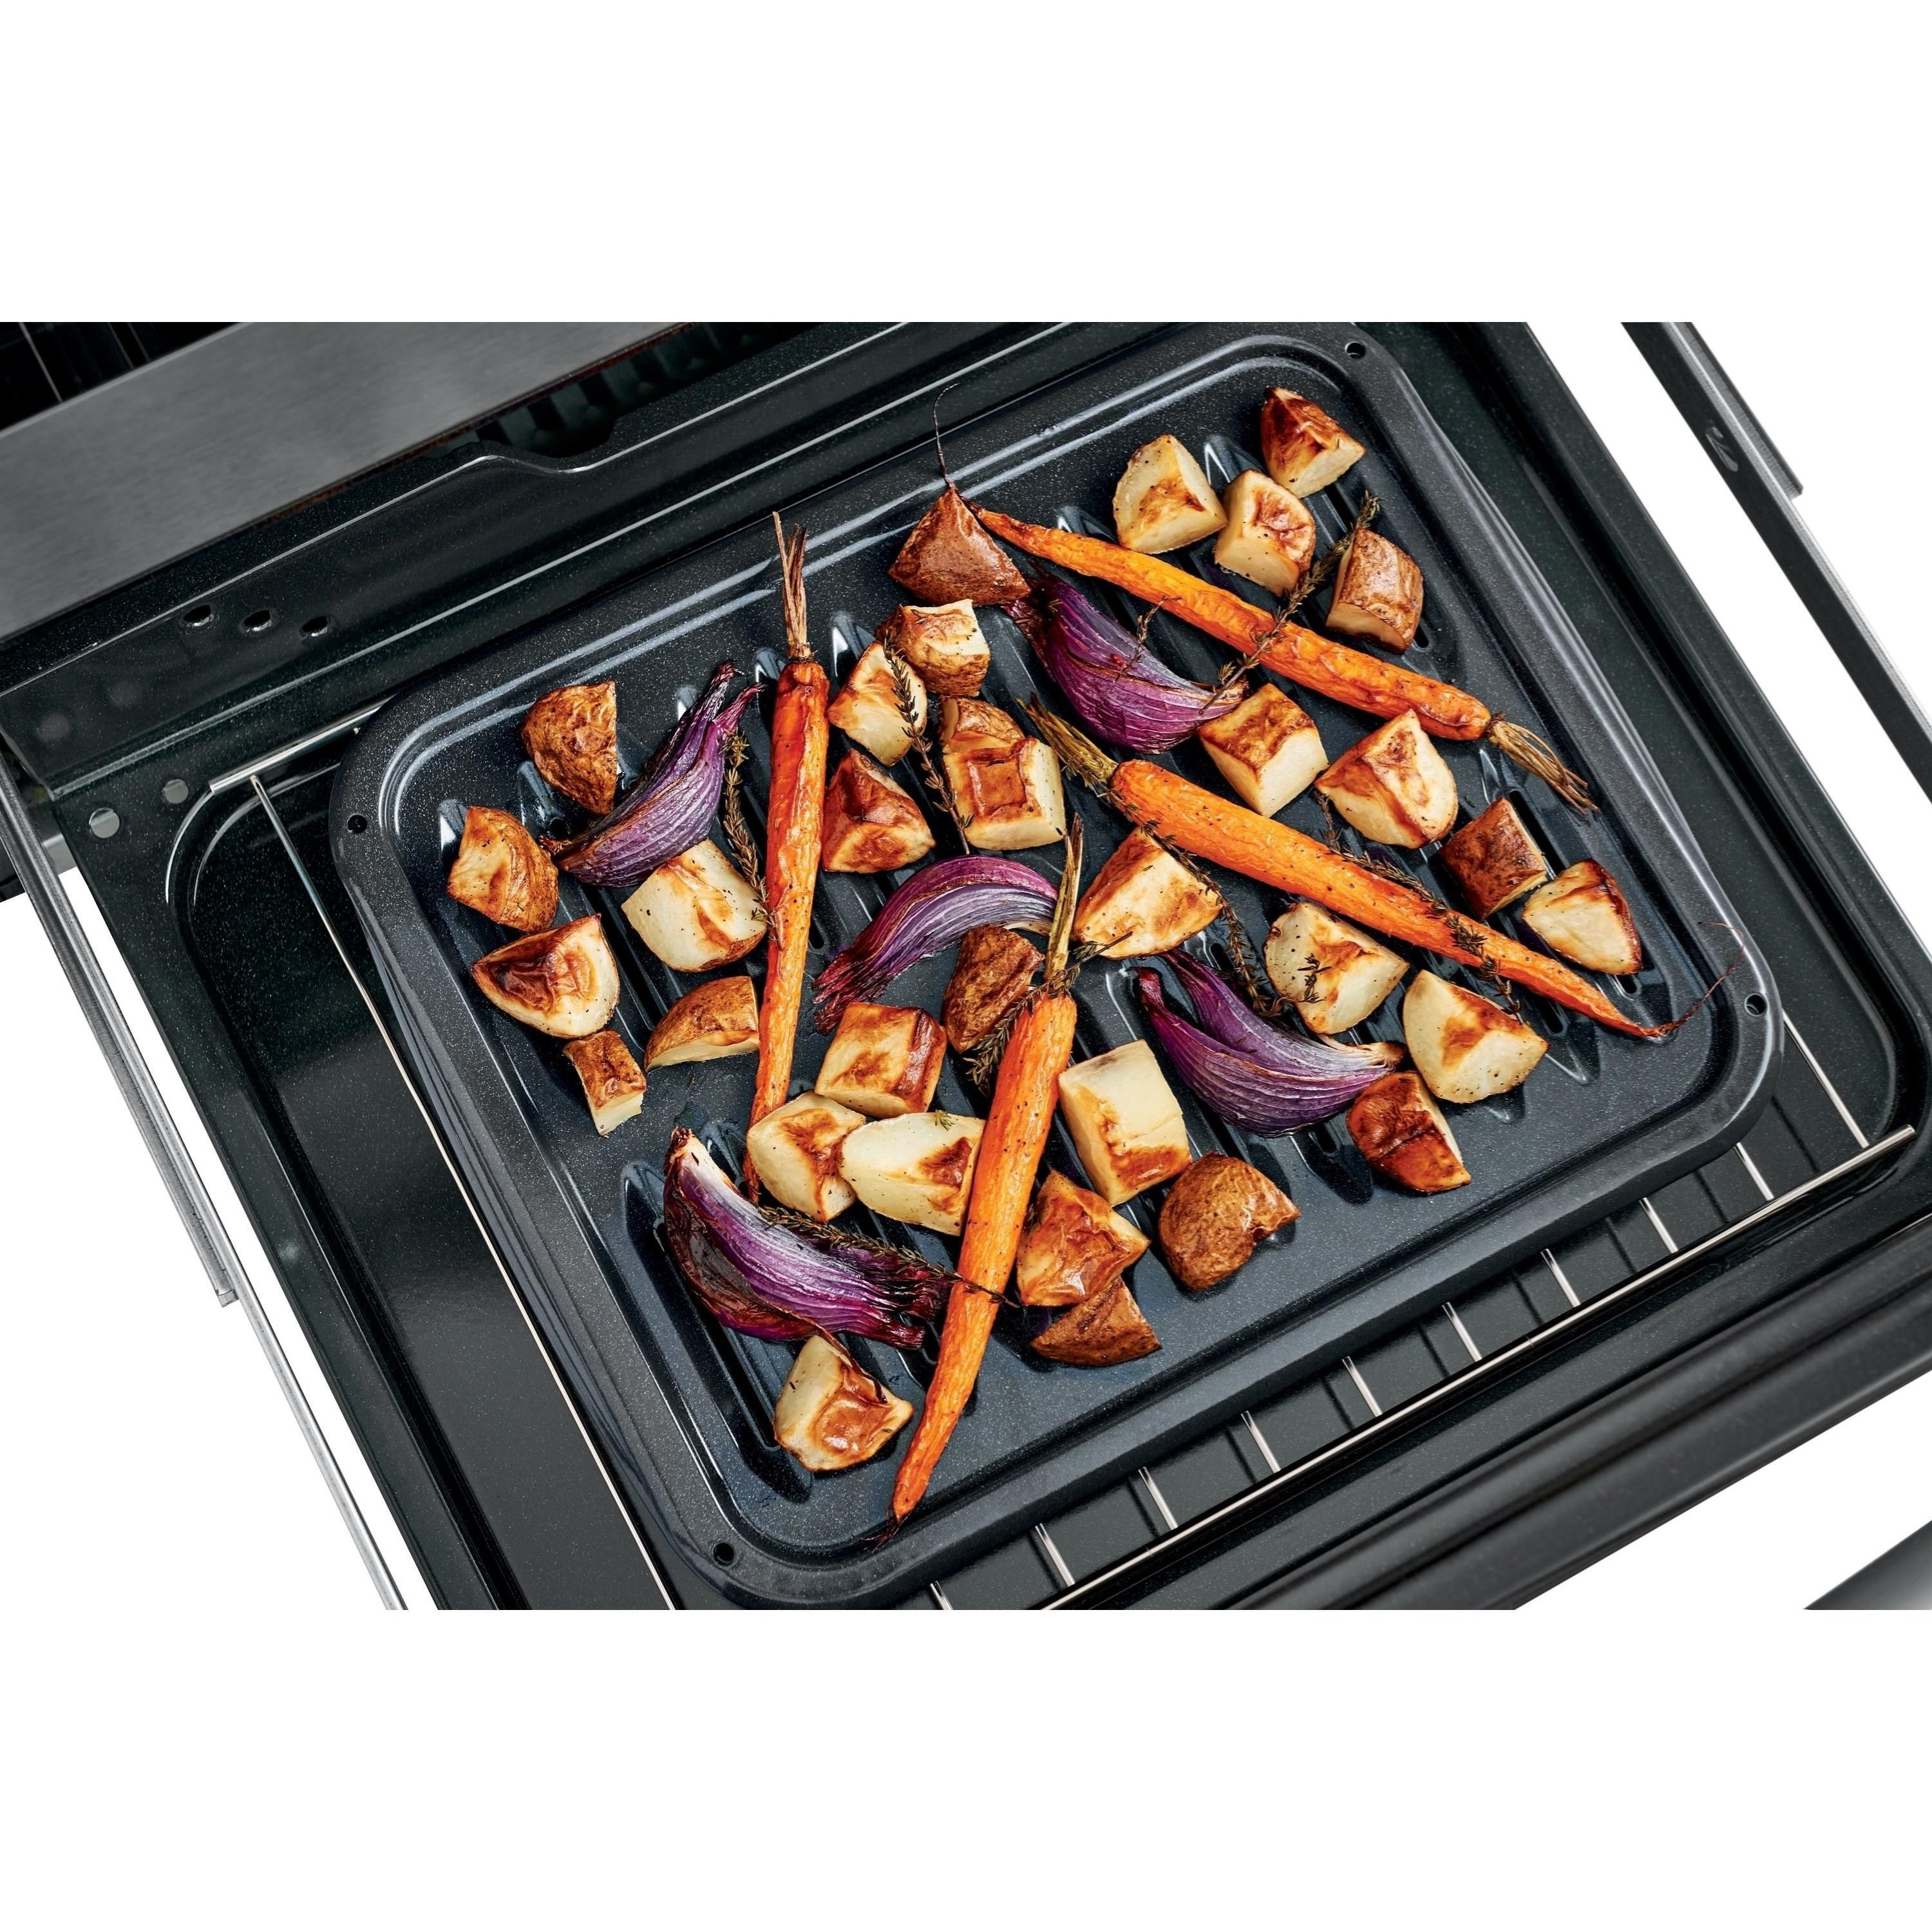 Frigidaire Ffgf3016ts30 Quot Gas Range With Low Simmer Burner